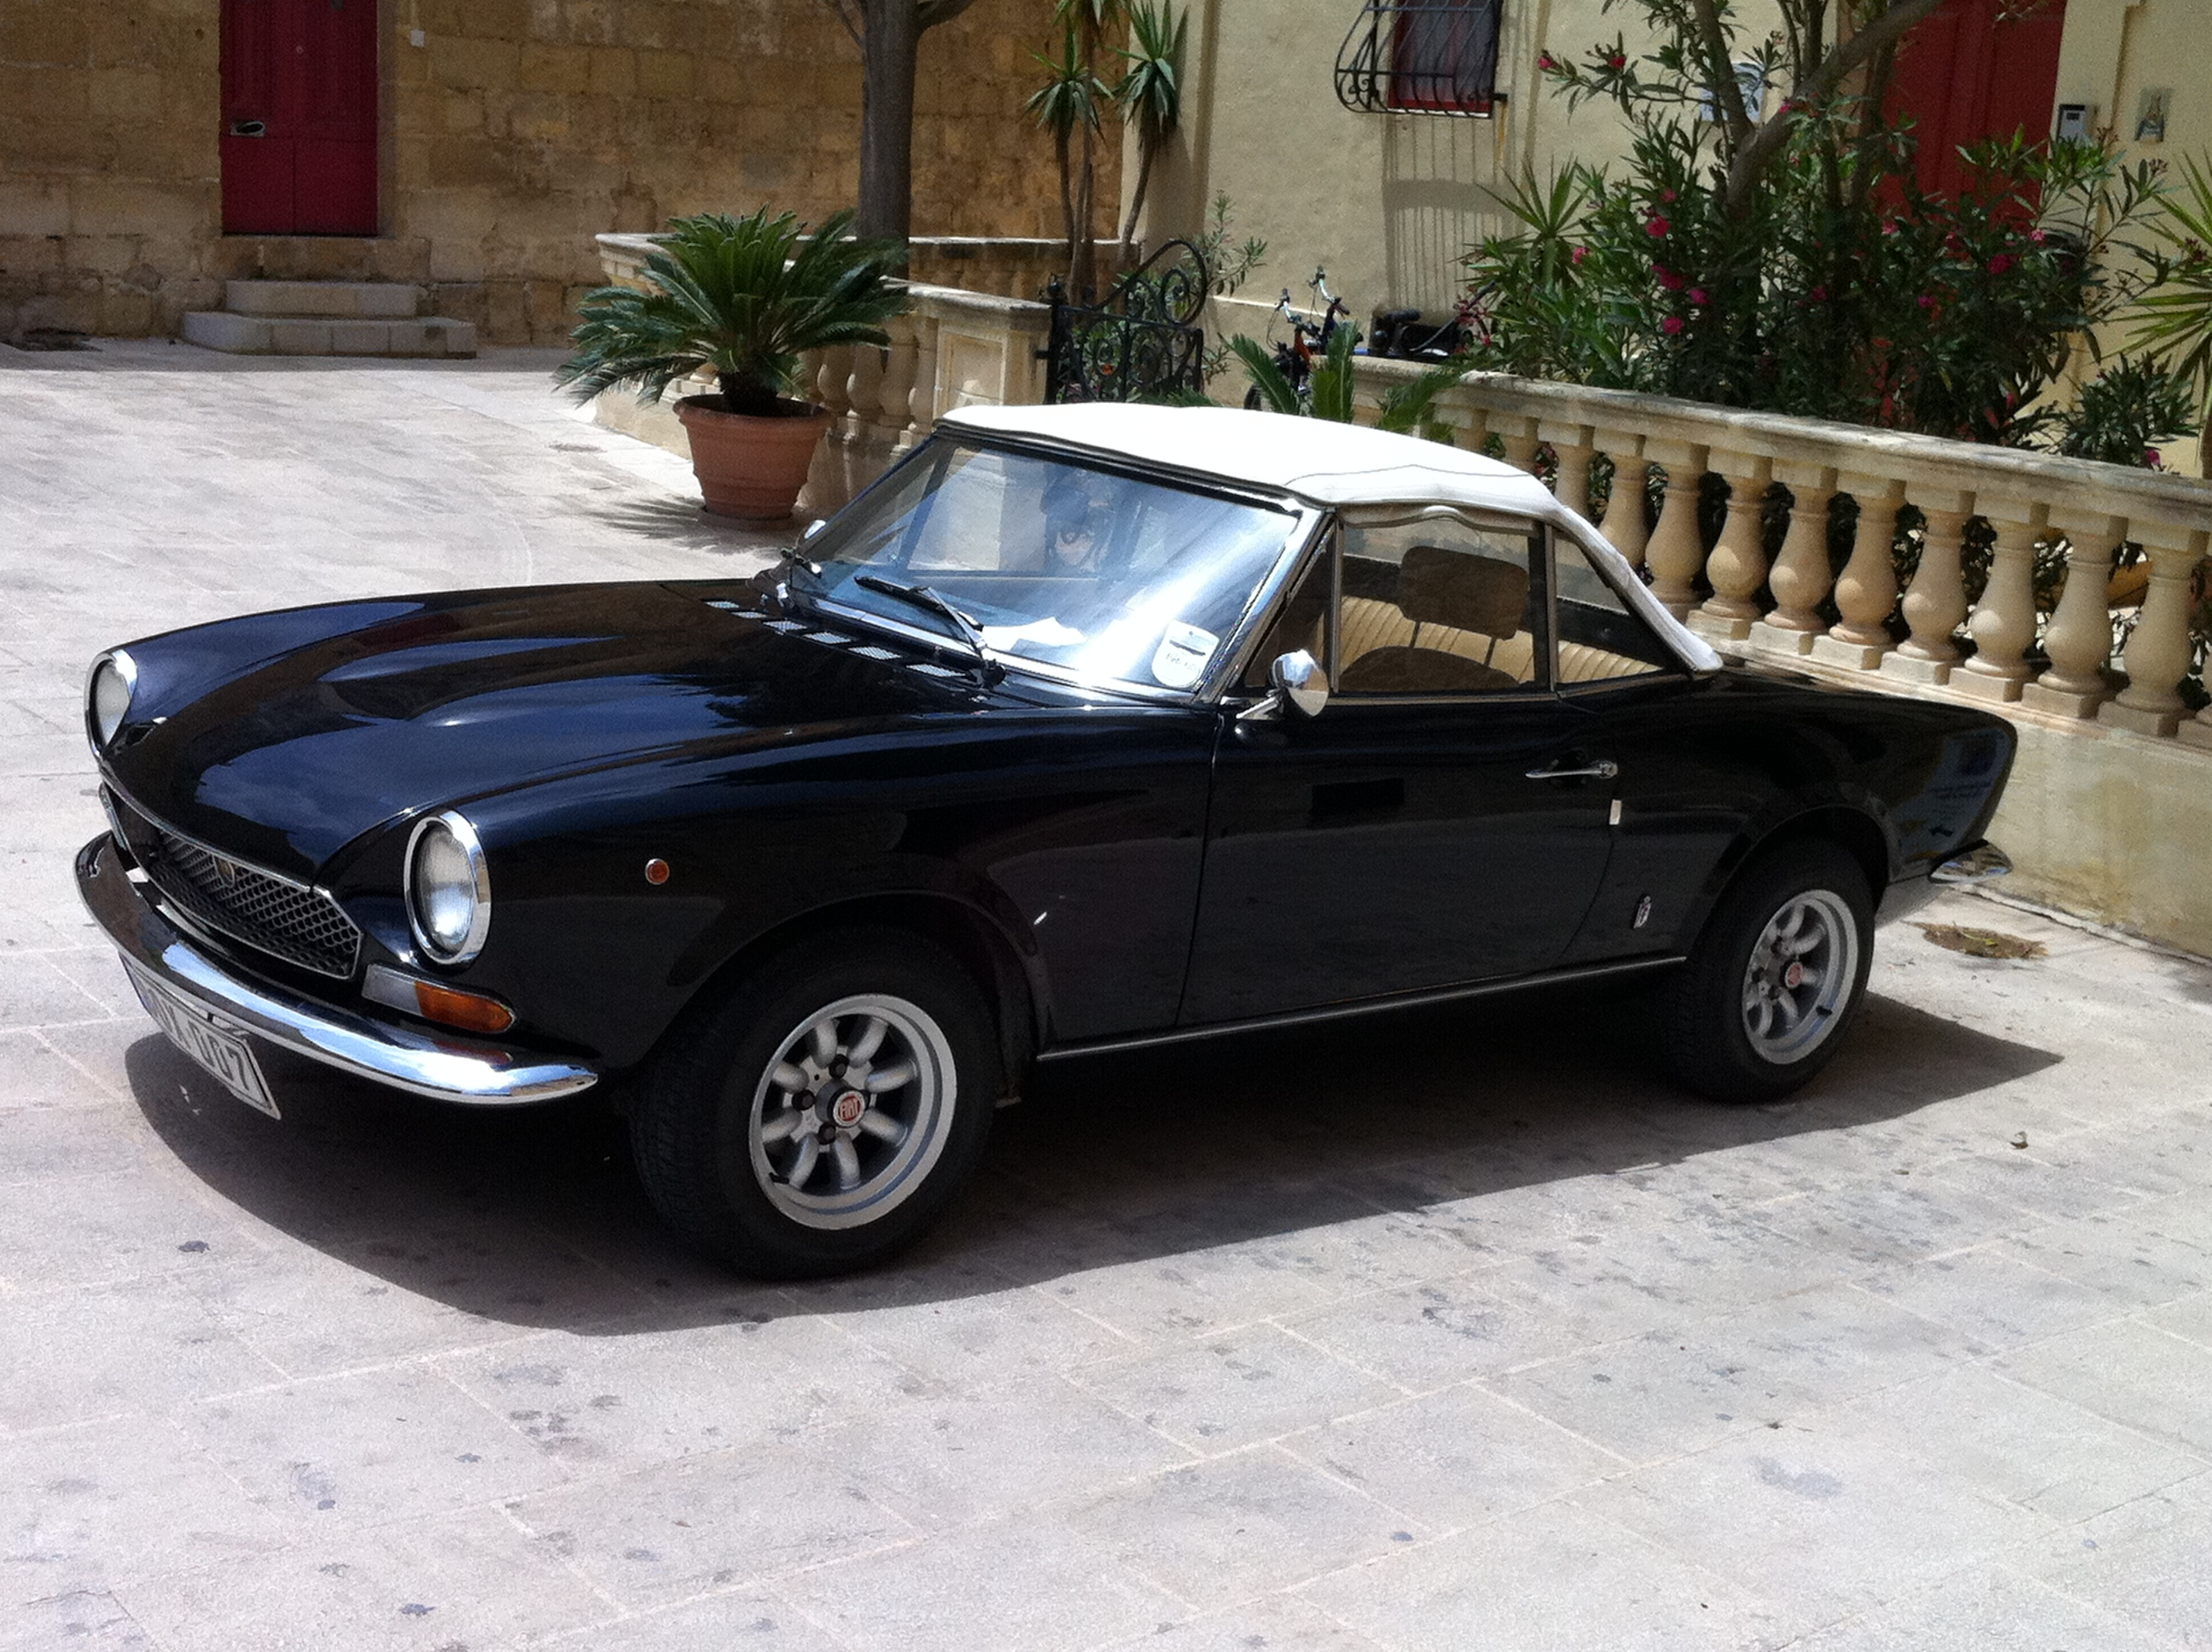 Affordable Classics Race Cars You Can Afford Viva 1970 Fiat Spider Convertible Img 0238